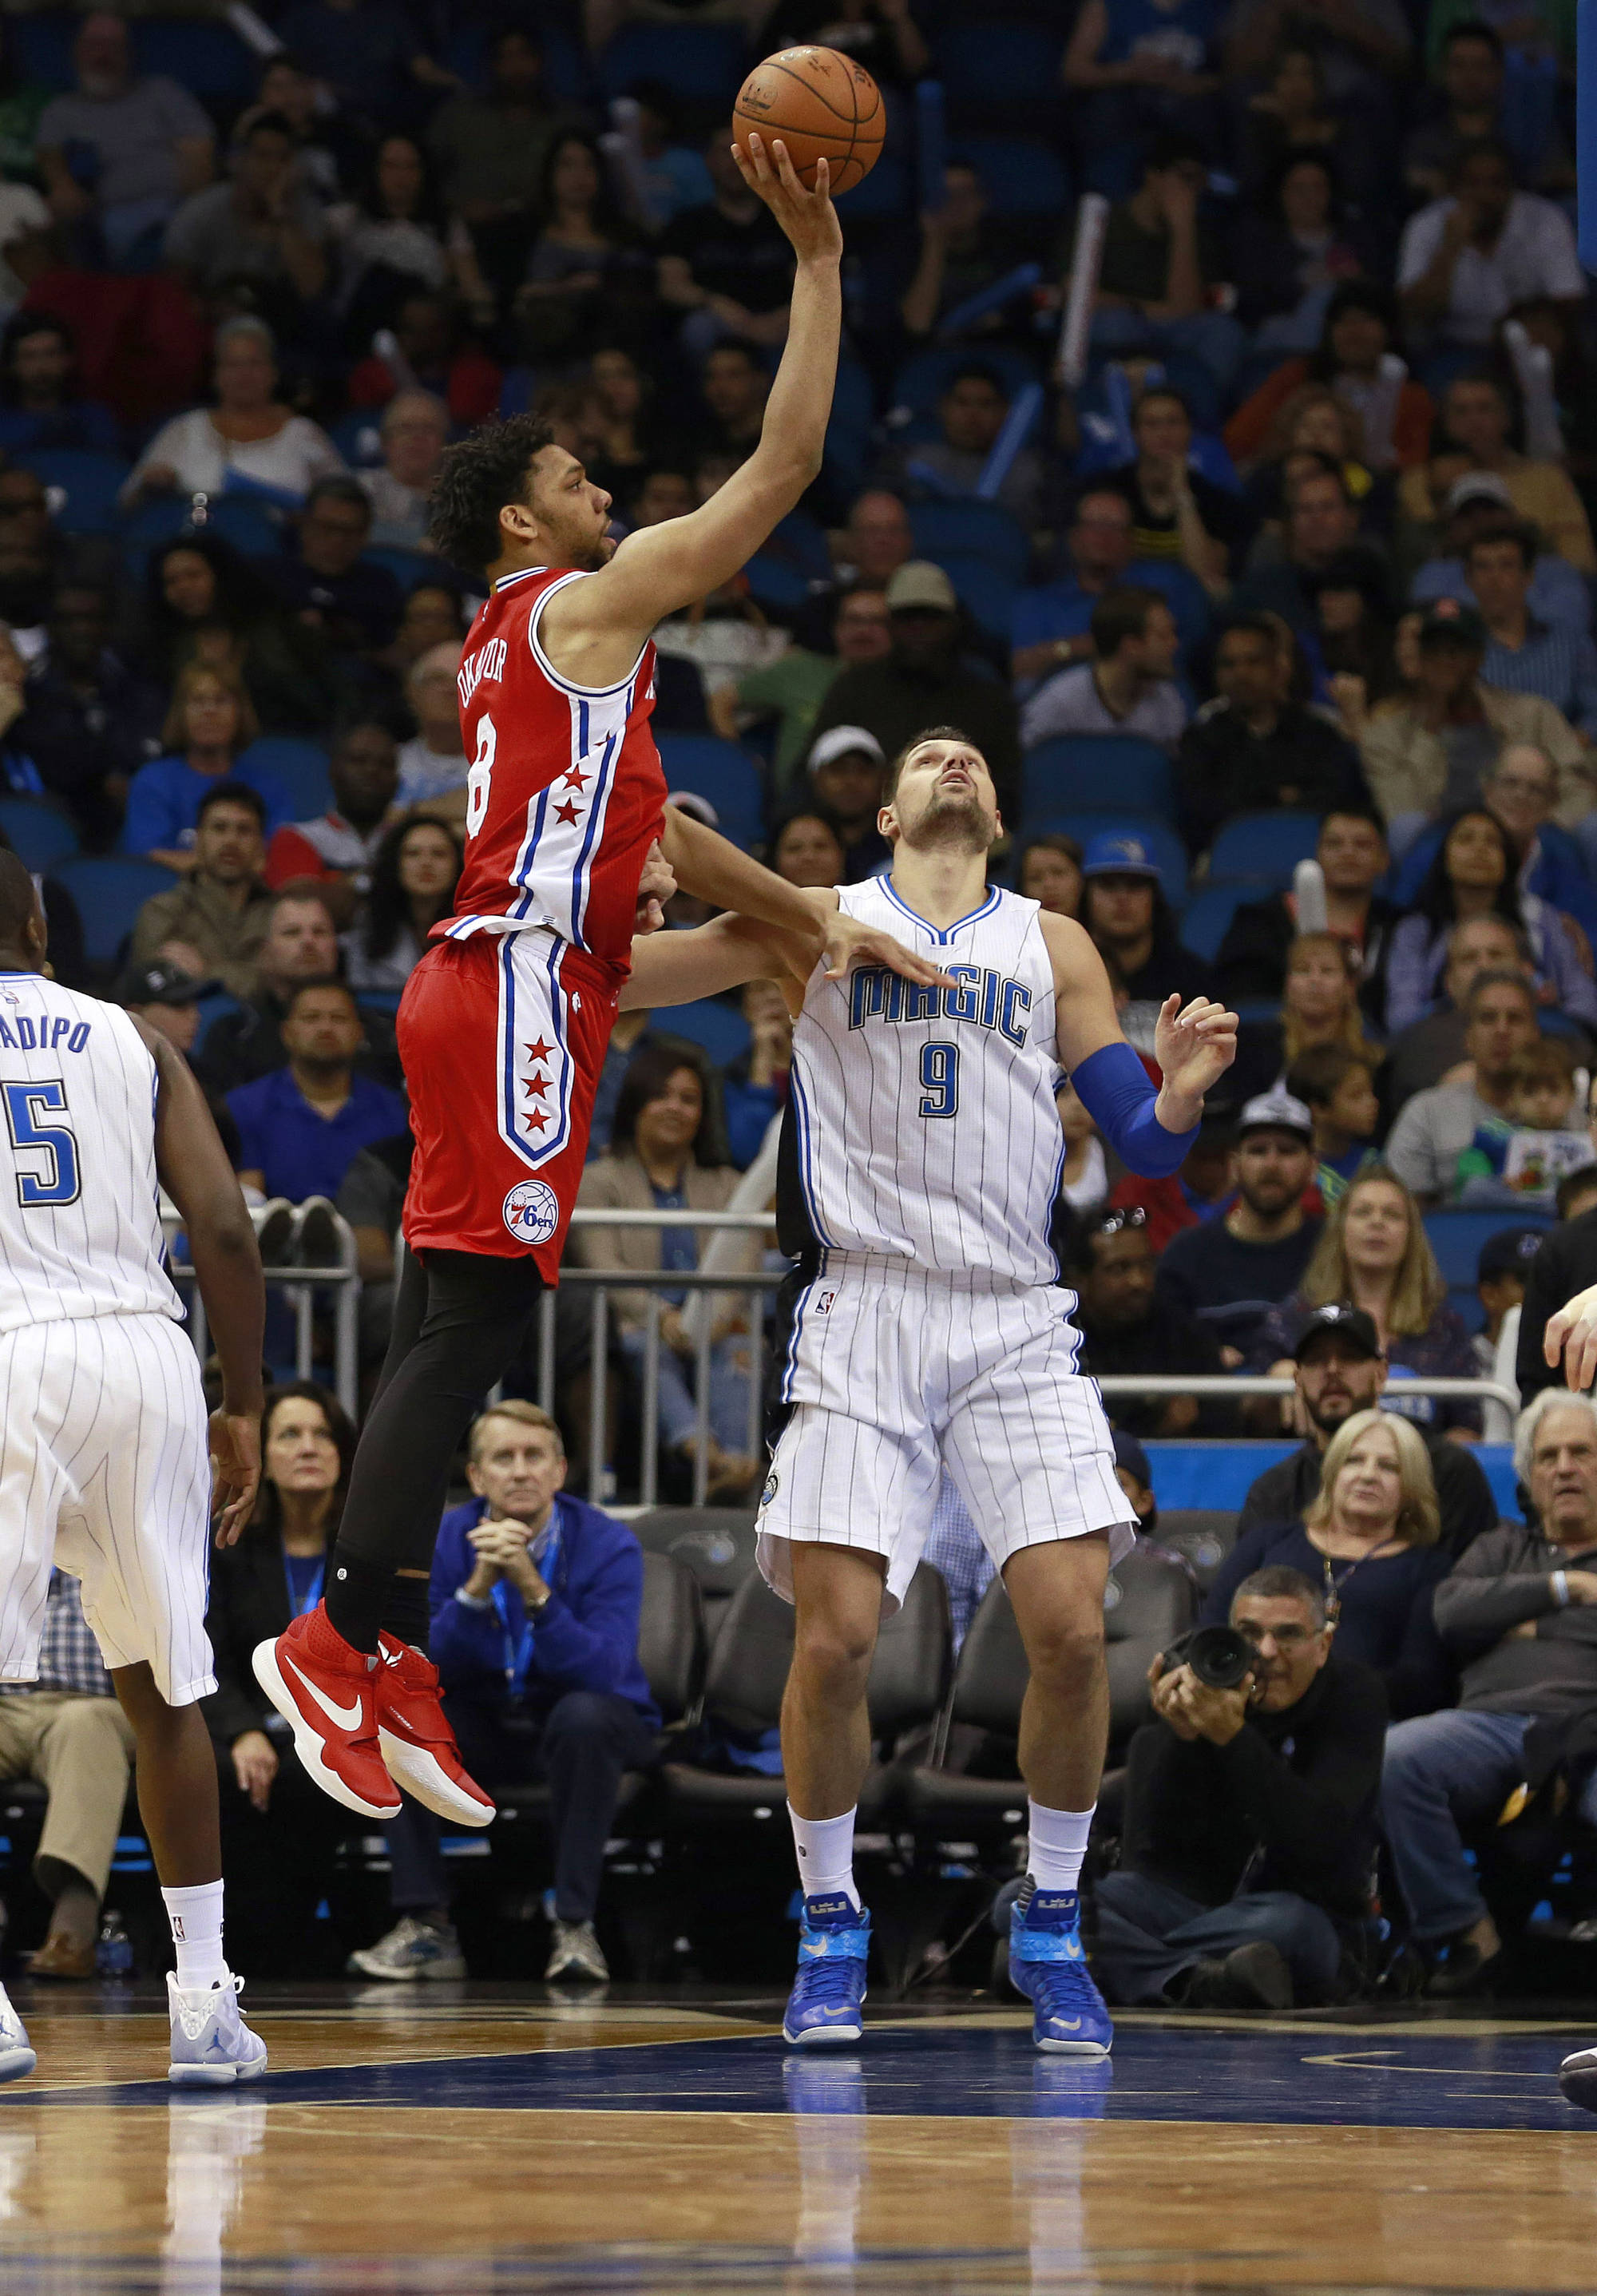 Jahlil Okafor might be traded to the San Antonio Spurs